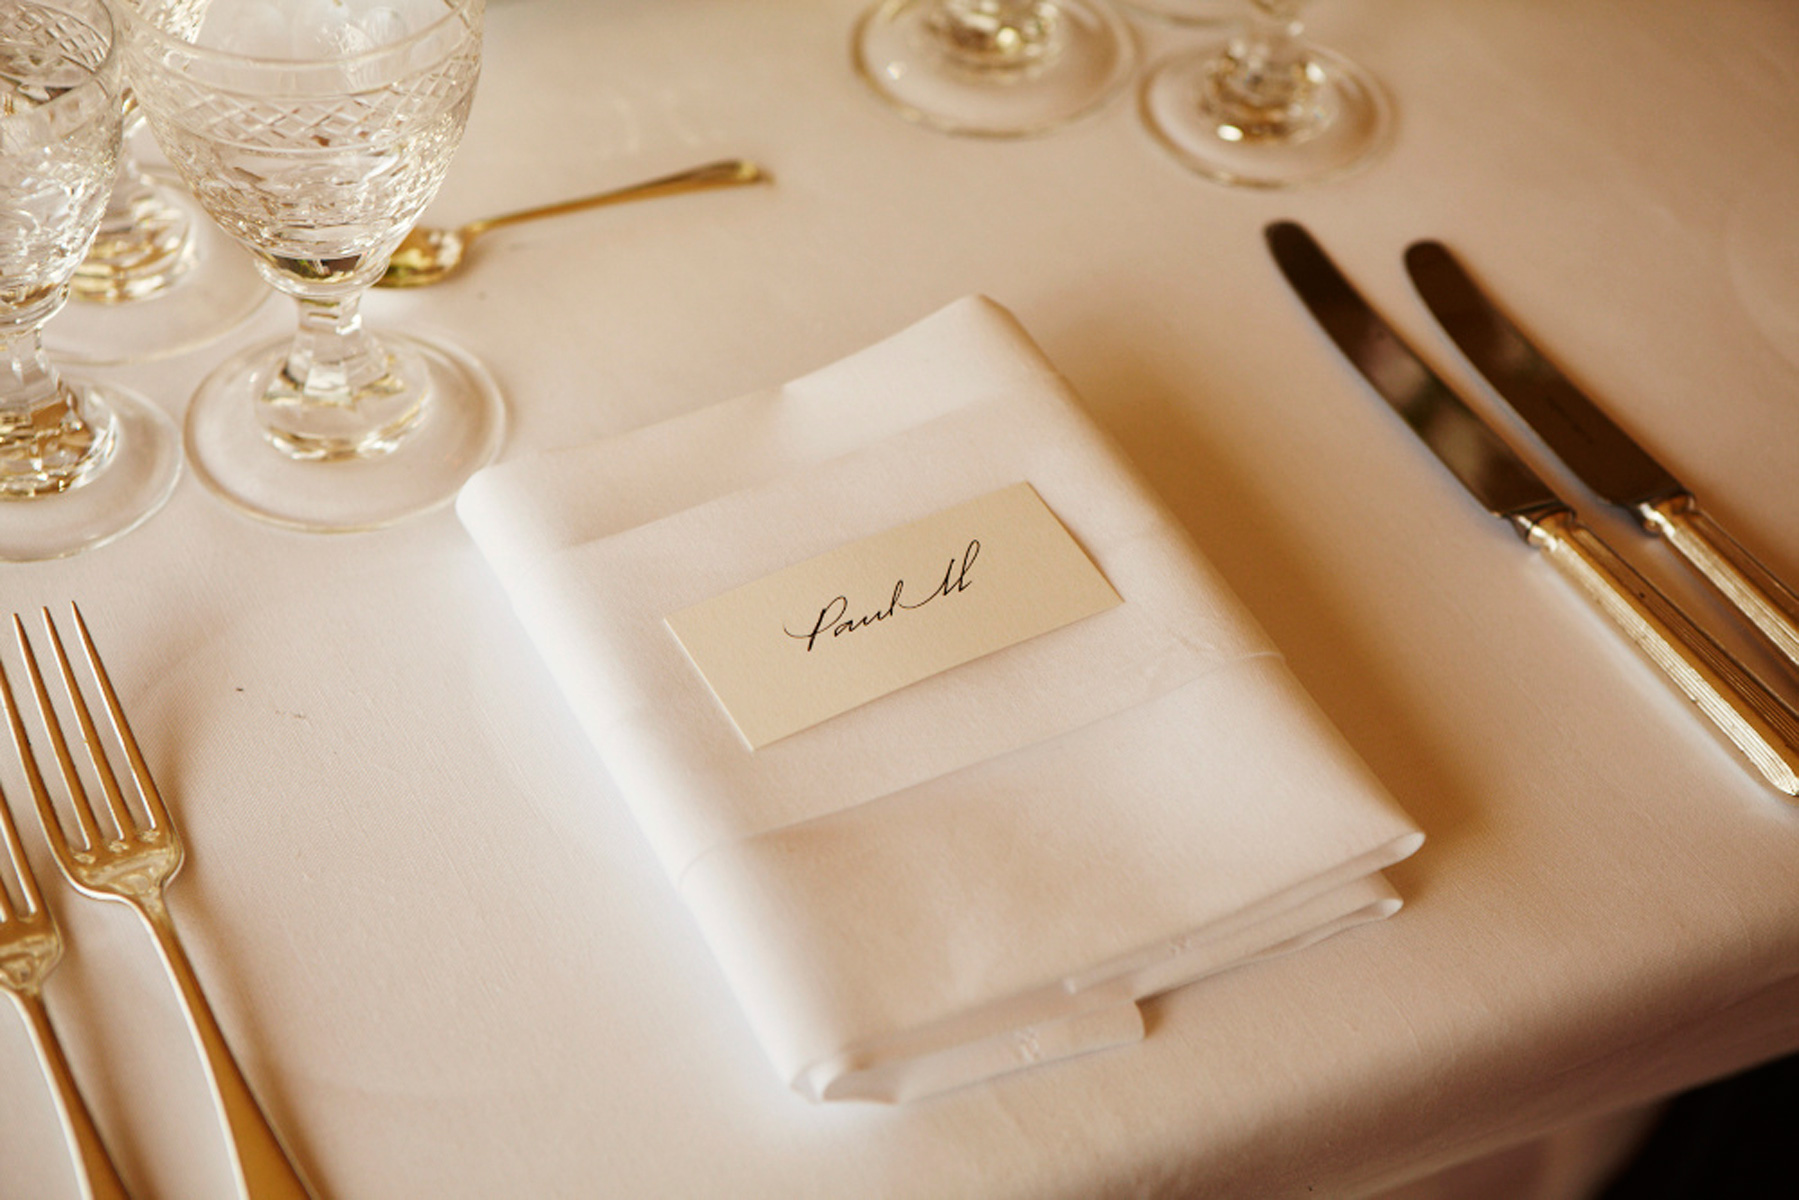 Place settings were marked with beautiful calligraphy. Simple, yet stylish and timeless.